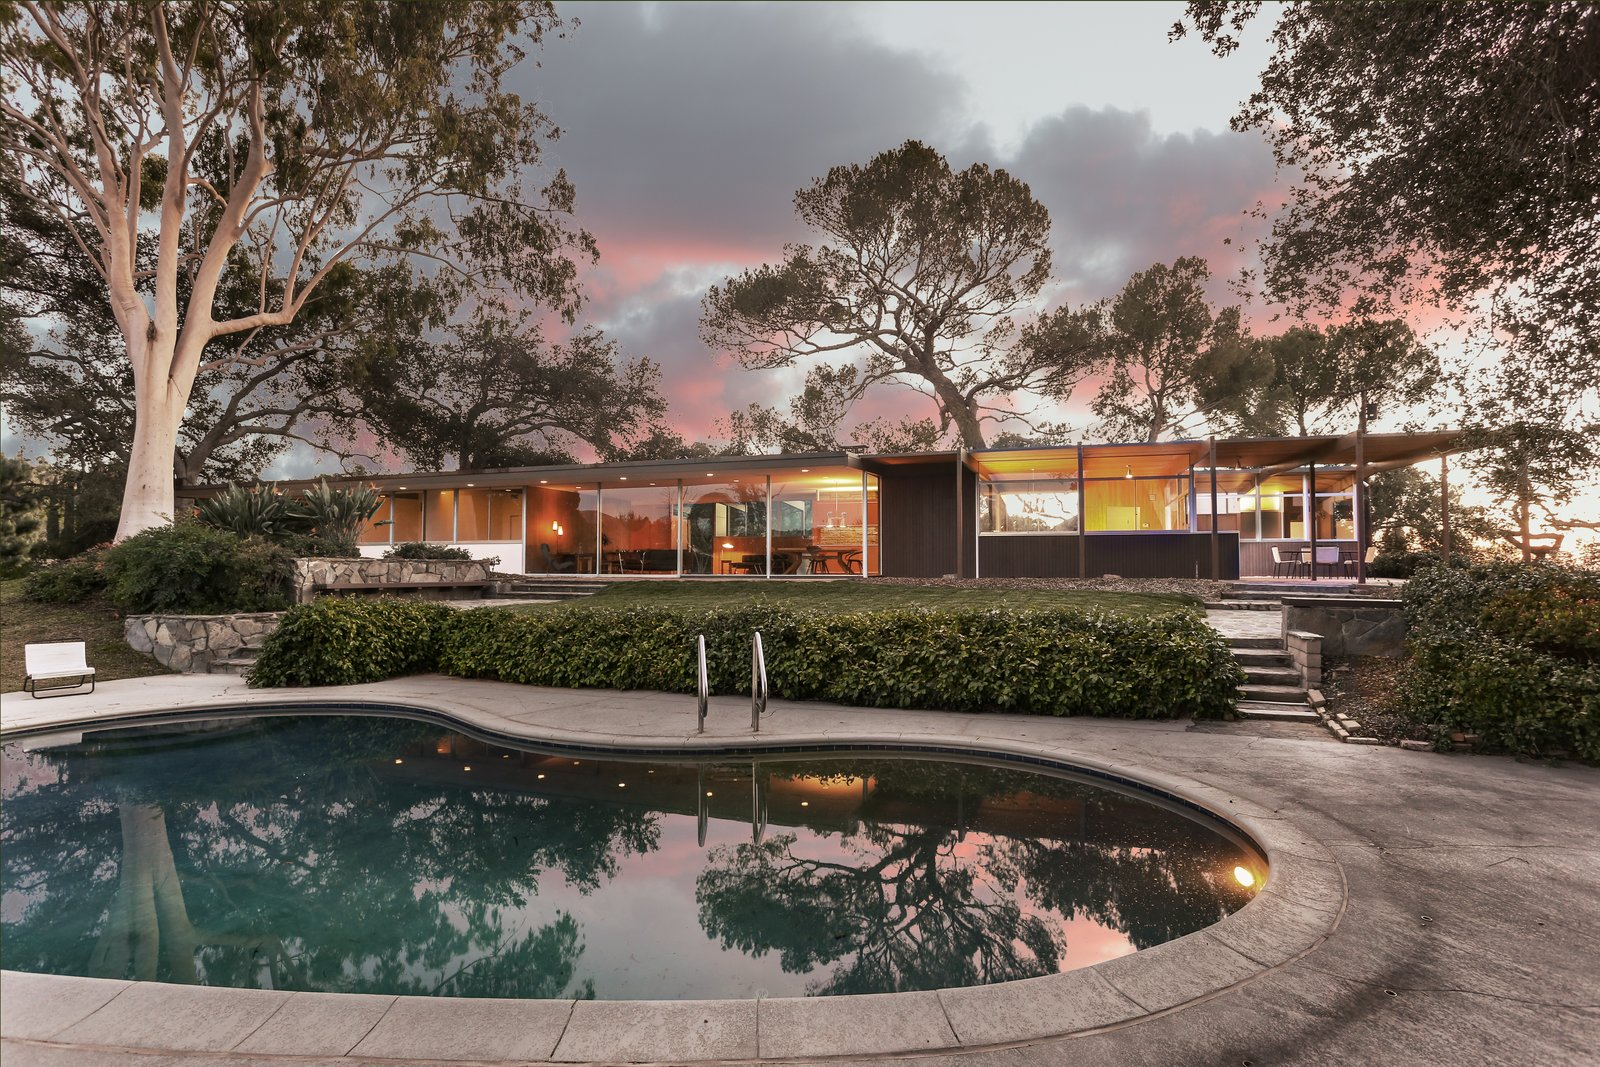 Photo 1 of 9 in Nearly Slated For Destruction, a Restored Neutra in West Covina Asks $1.8M